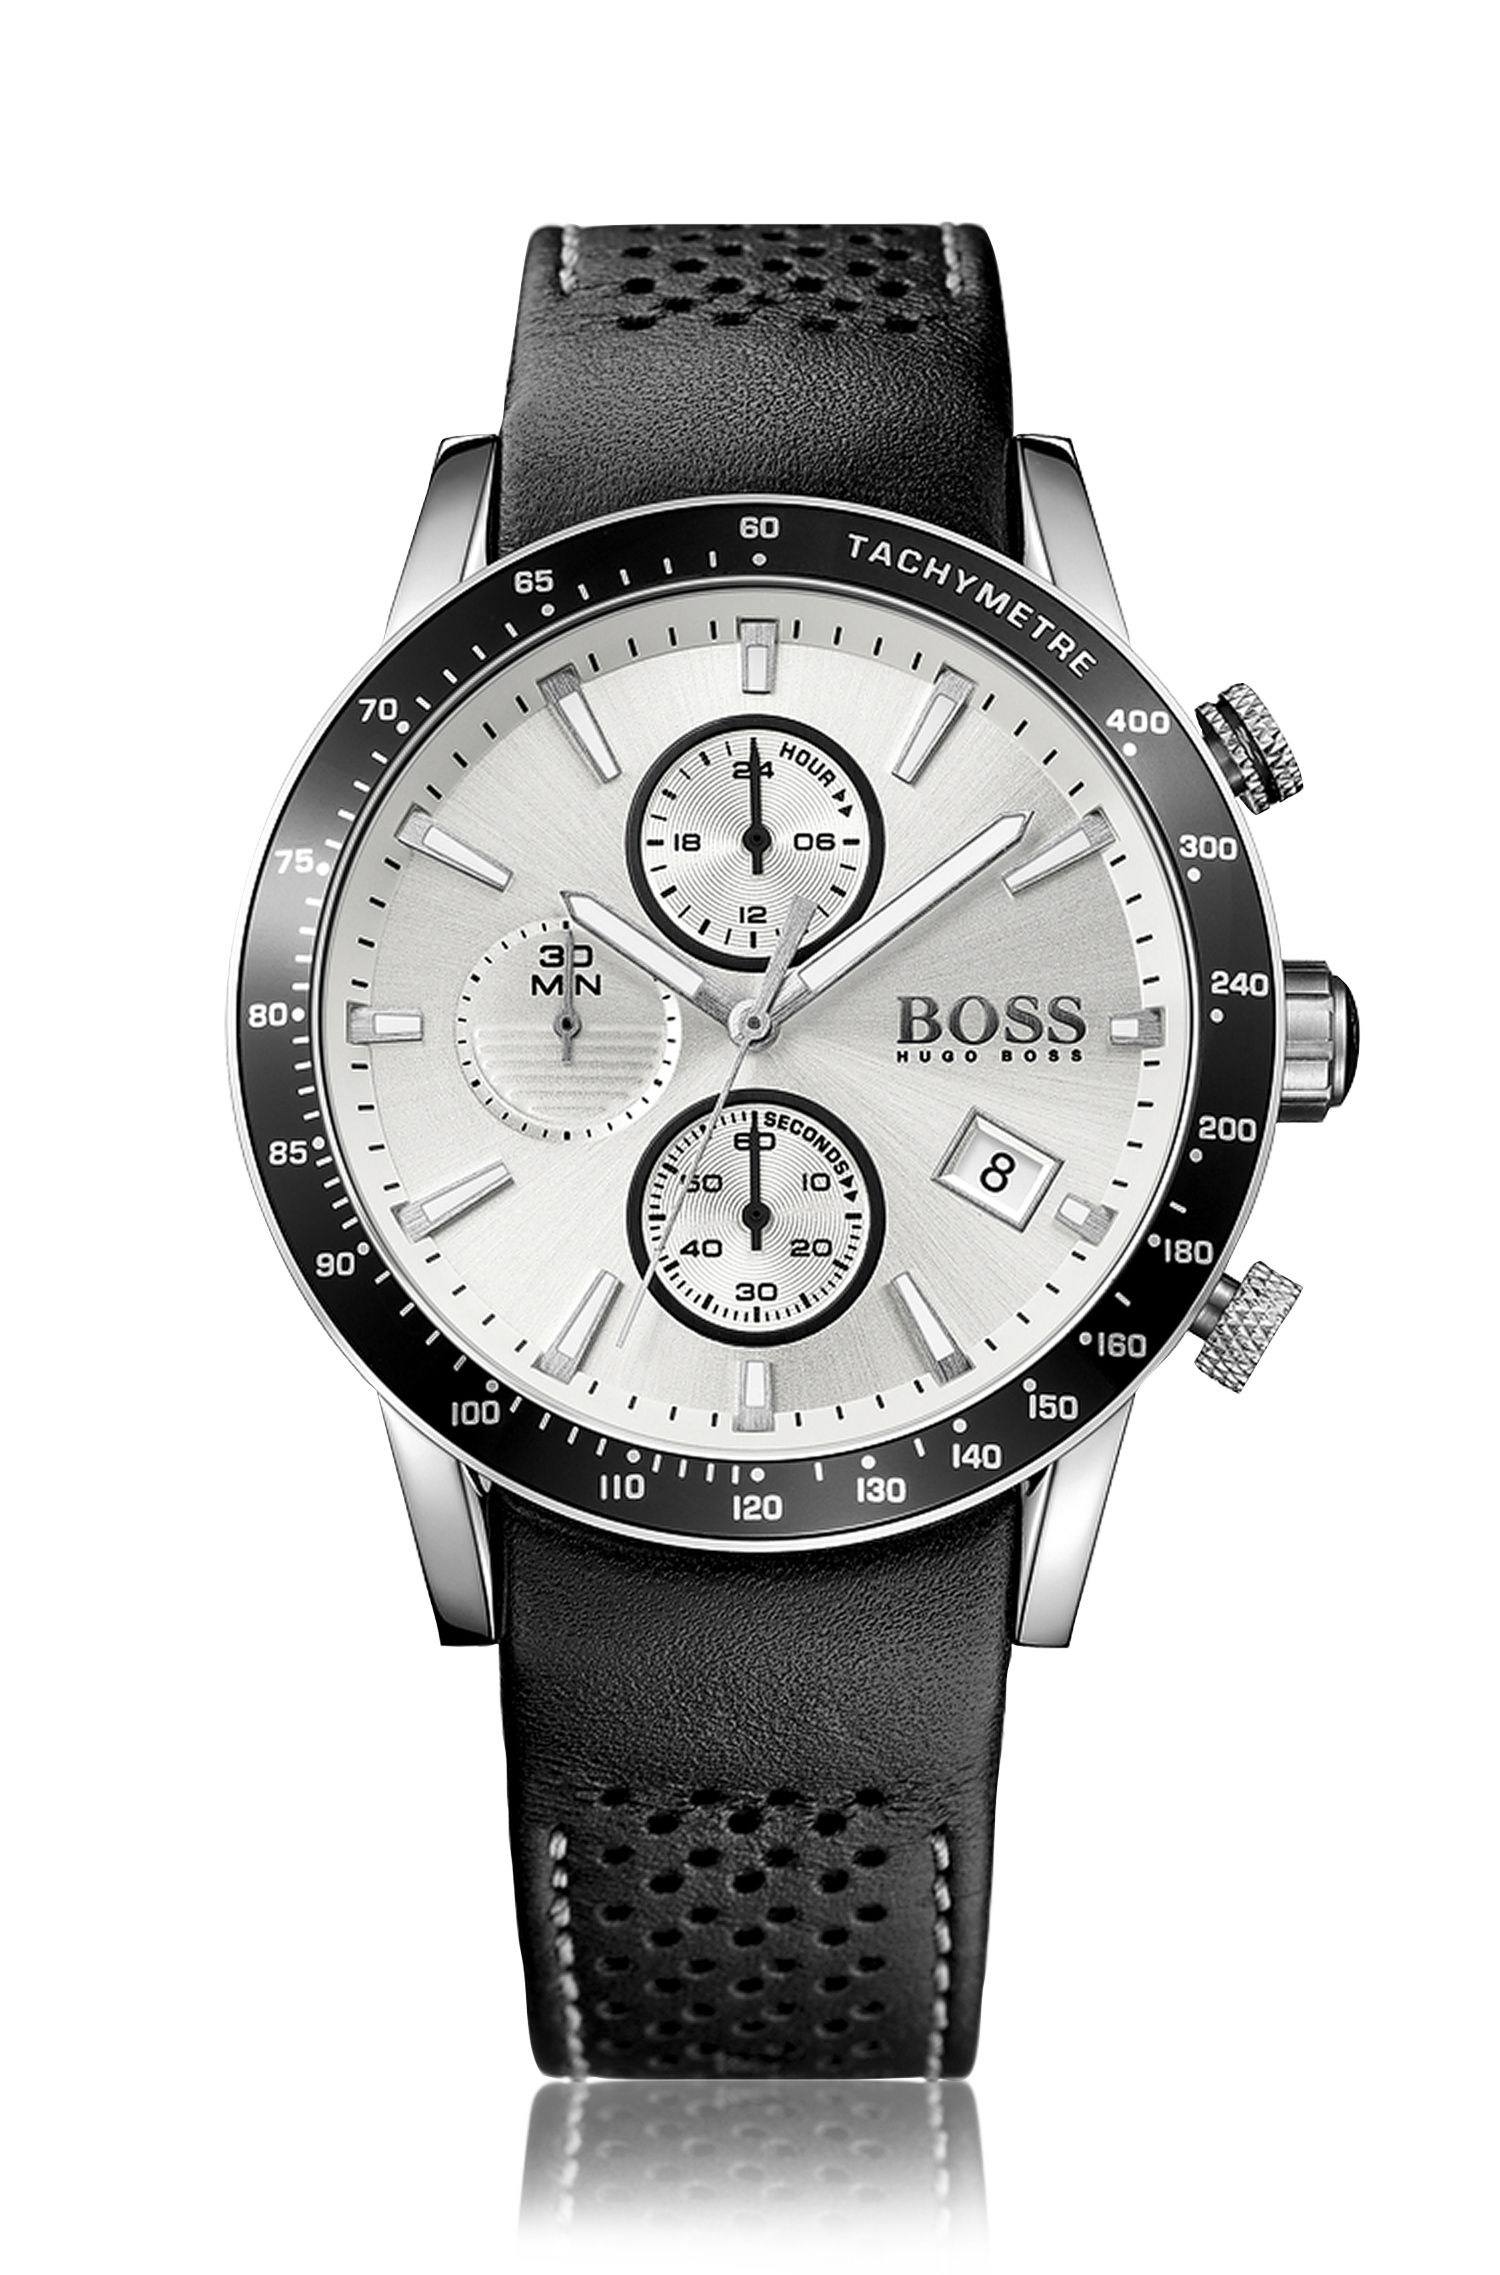 Grey-plated stainless-steel sportswatch with silver dial and perforated leather strap